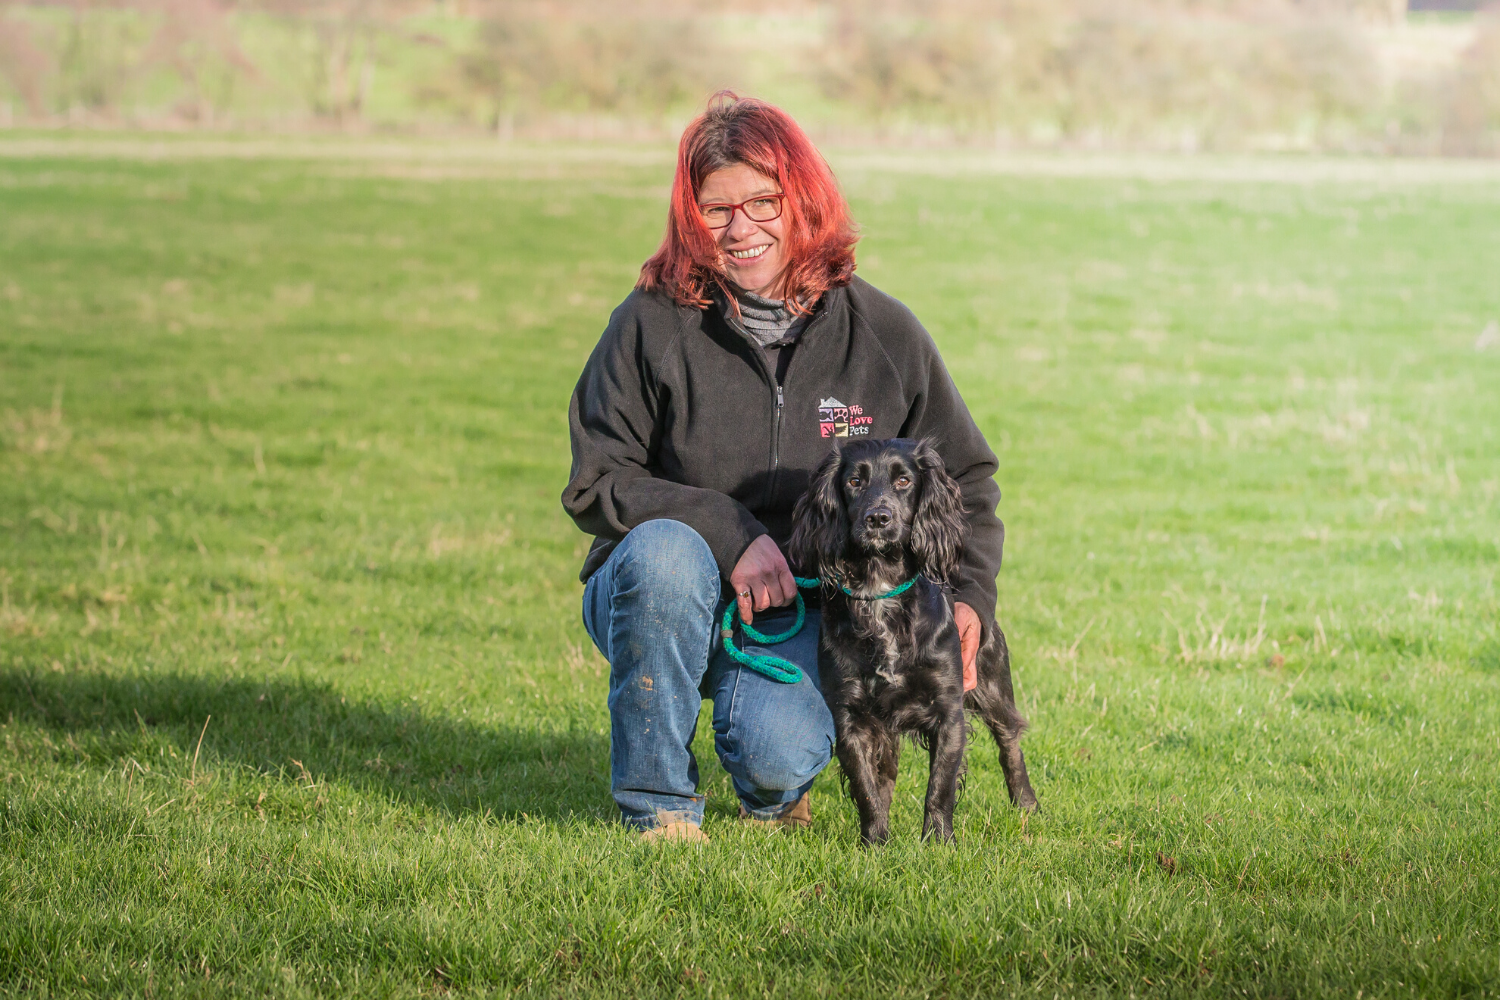 Professional Pet Care and dog walking service in Horwich